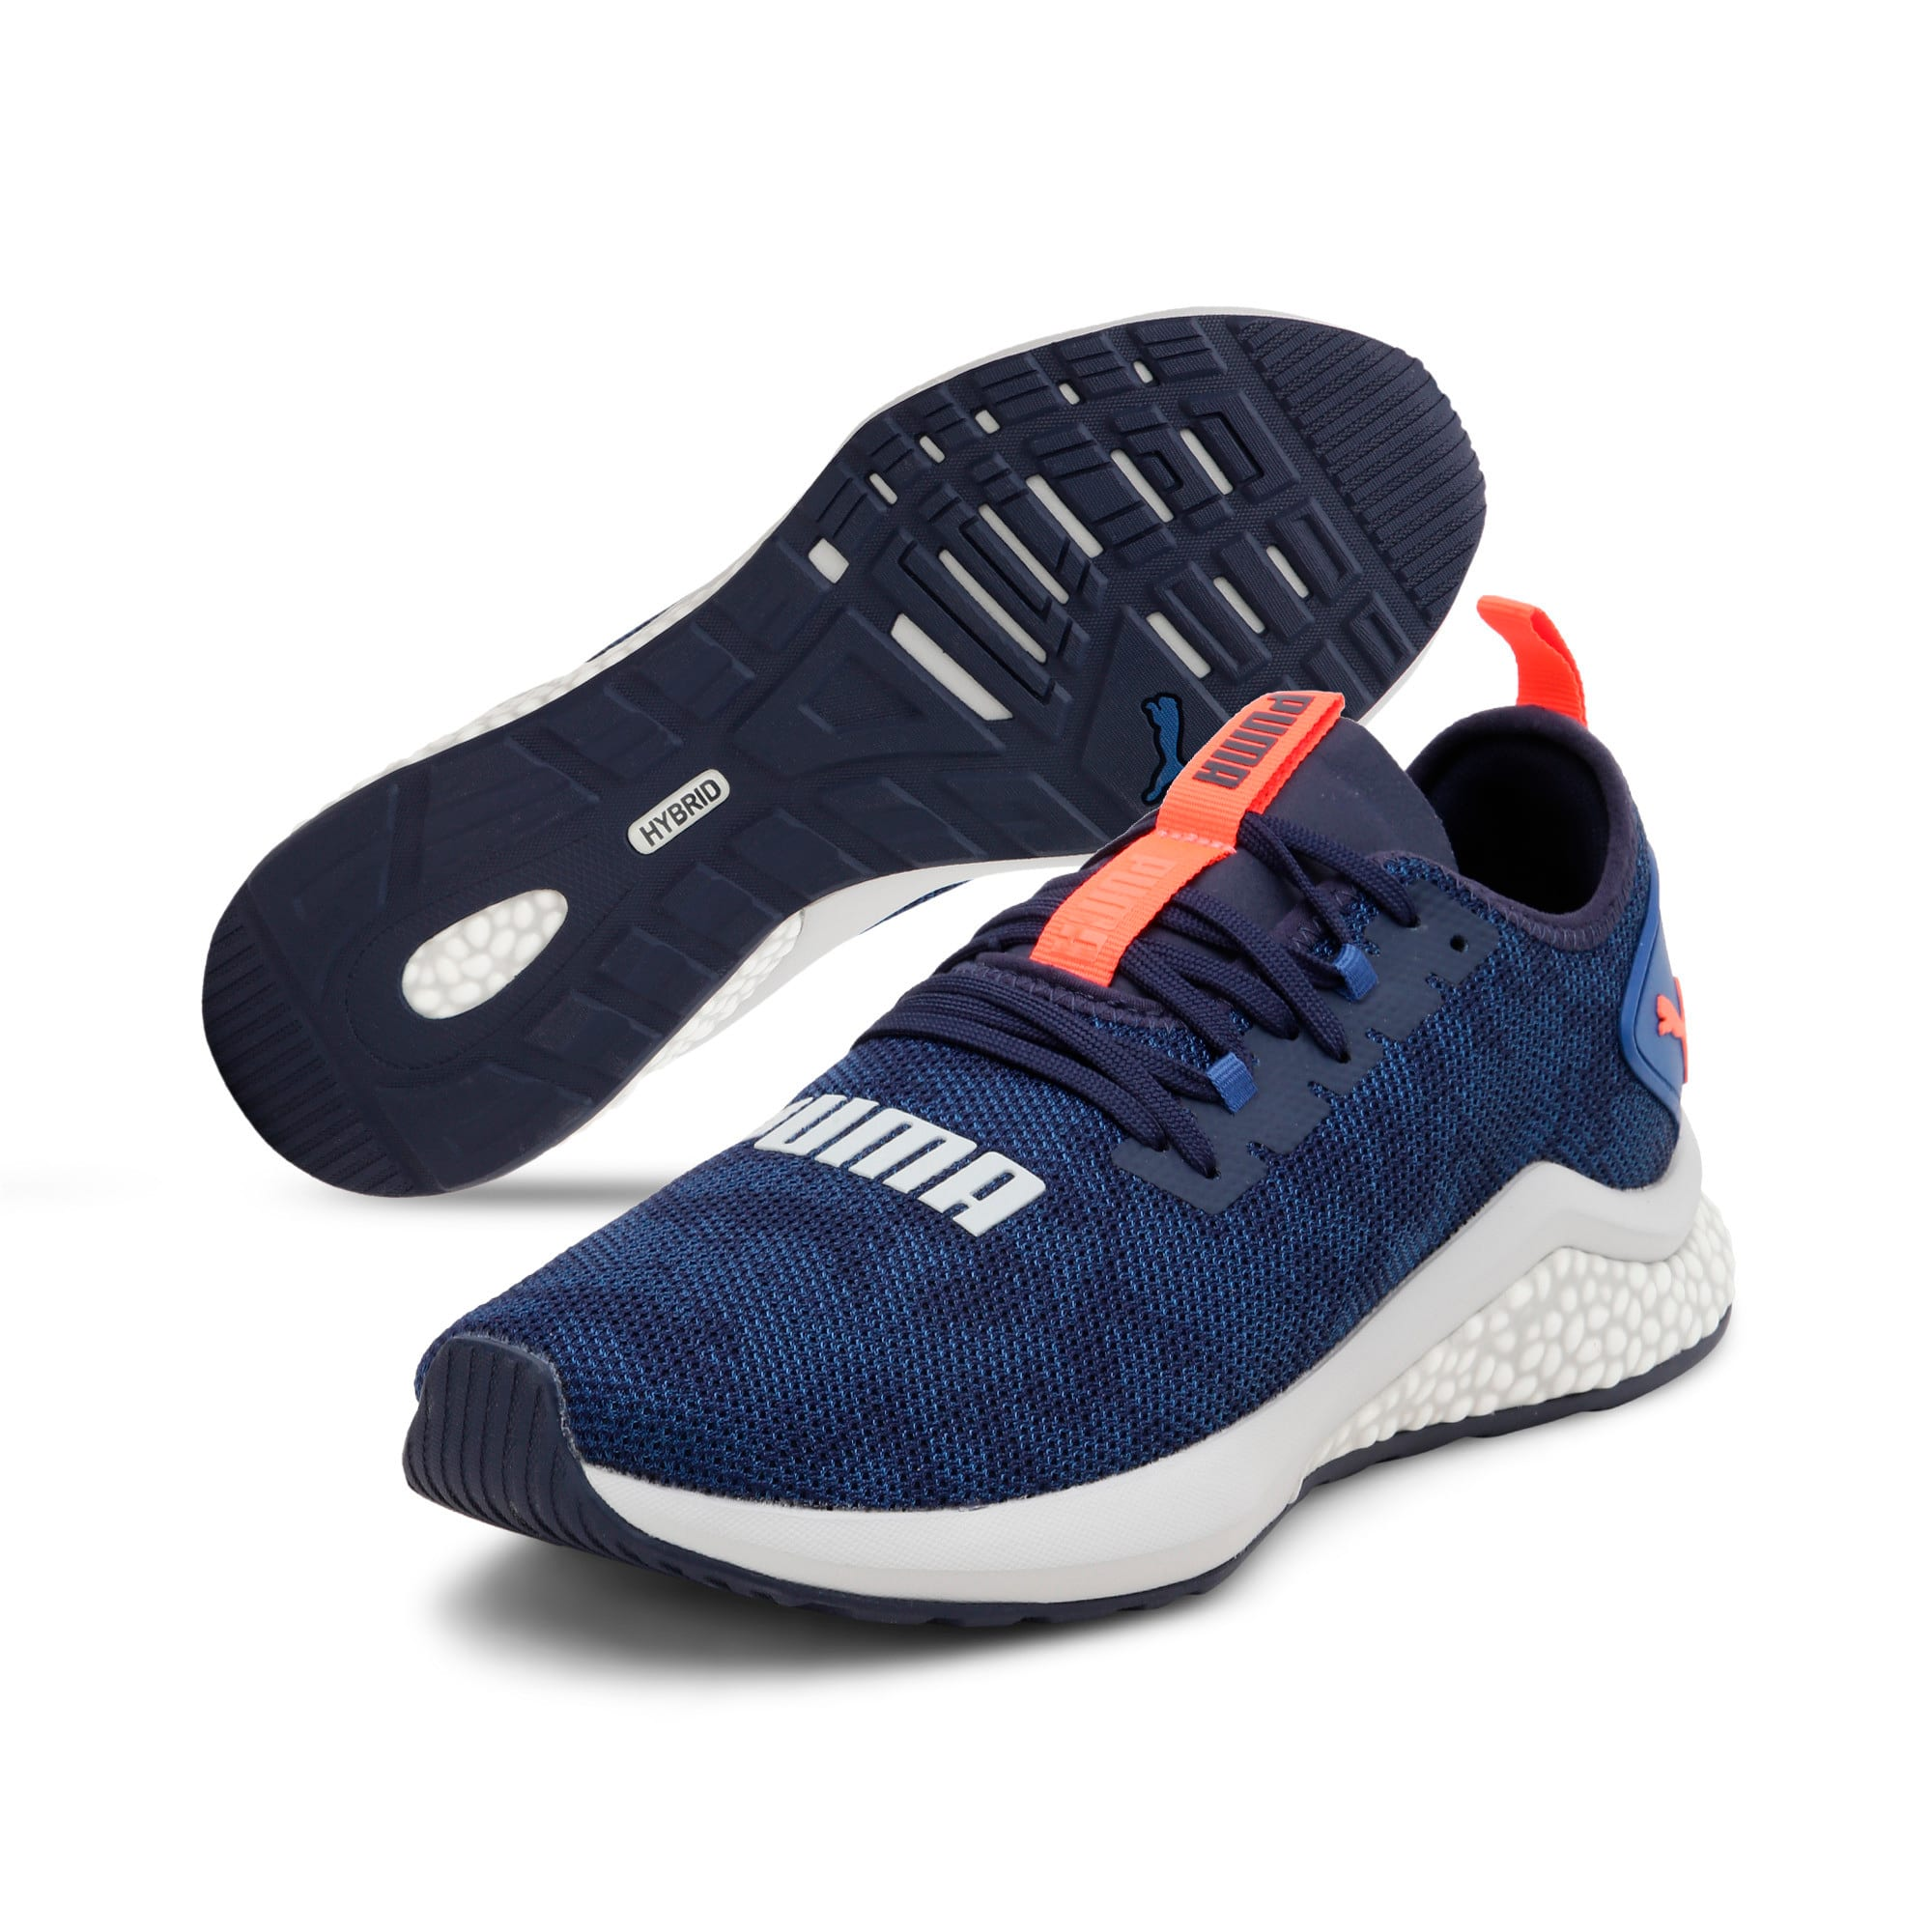 Thumbnail 4 of Hybrid NX Camo Men's Running Sneakers, GalaxyBlue-Peacoat-HighRise, medium-IND